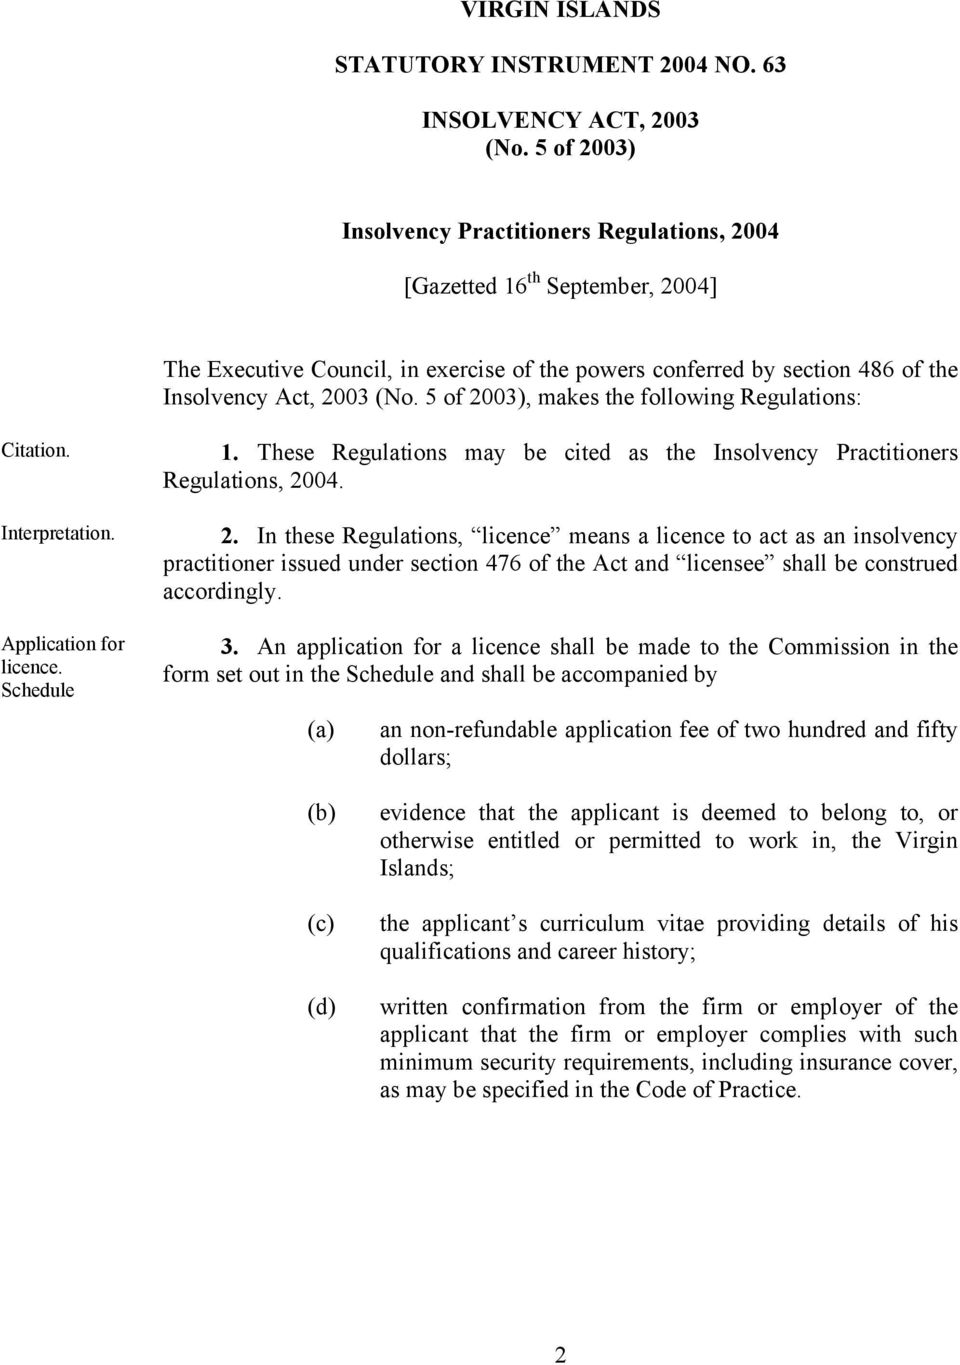 5 of 2003), makes the following Regulations: Citation. Interpretation. Application for licence. Schedule 1. These Regulations may be cited as the Insolvency Practitioners Regulations, 2004. 2. In these Regulations, licence means a licence to act as an insolvency practitioner issued under section 476 of the Act and licensee shall be construed accordingly.